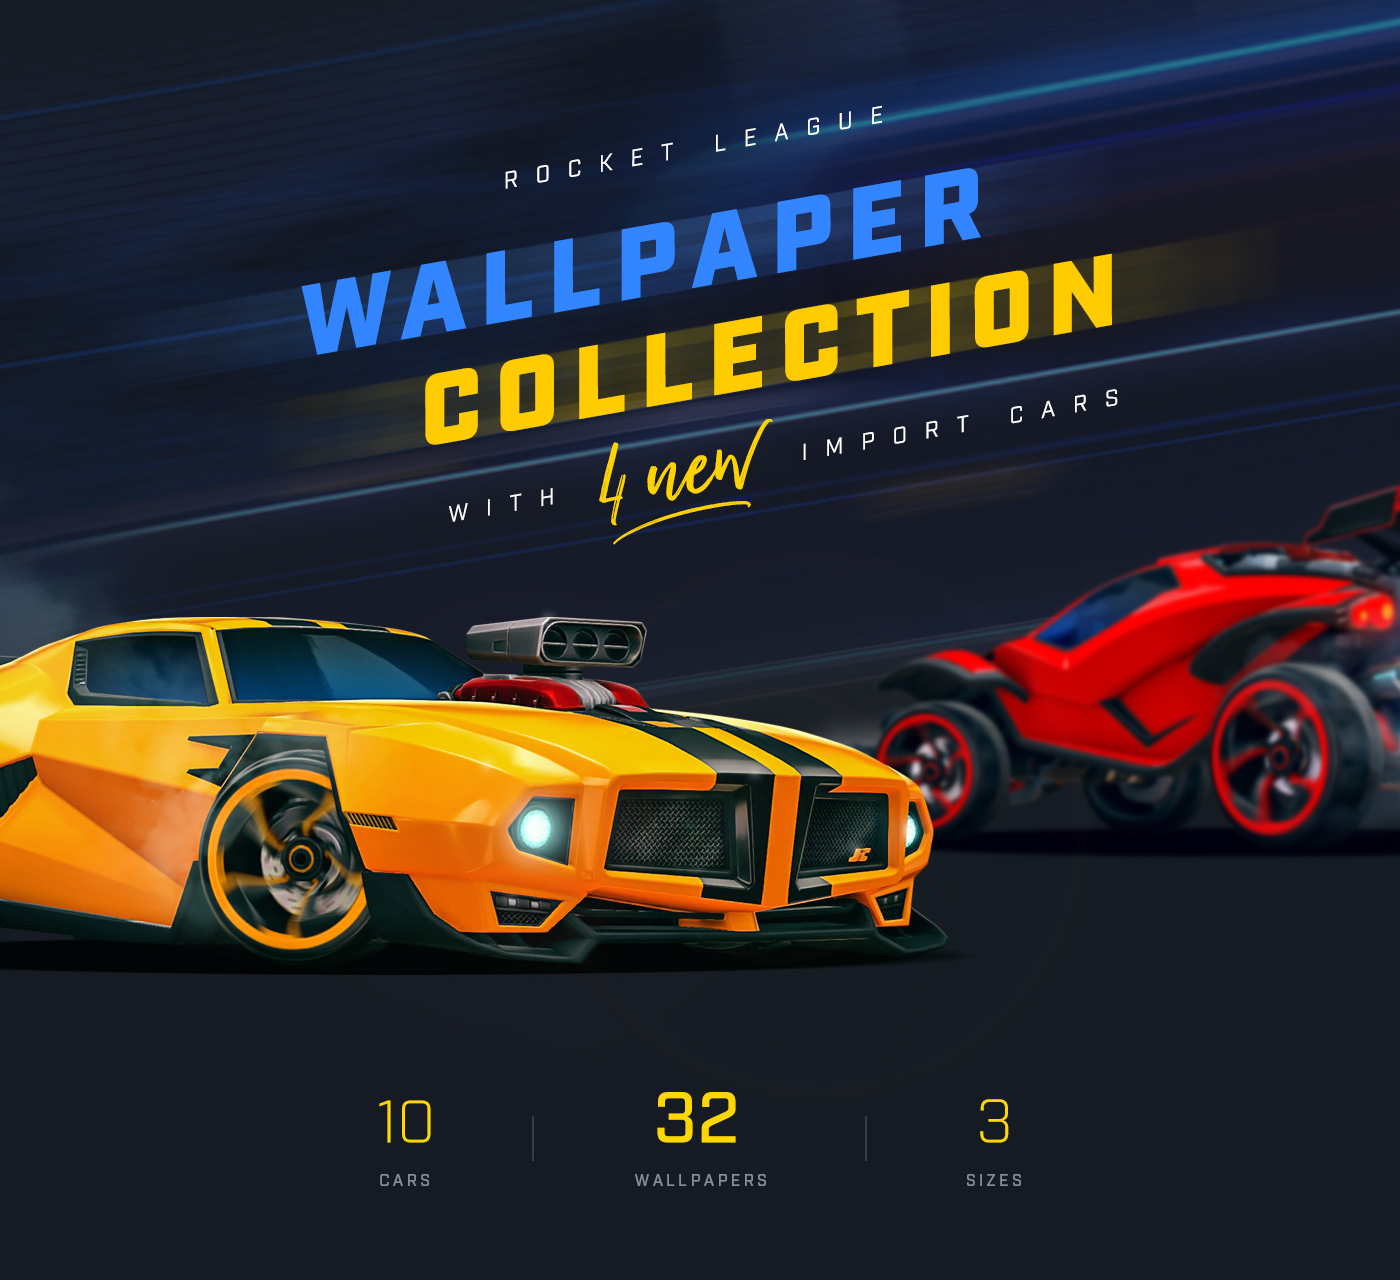 Rocket League Wallpaper Collection On Behance